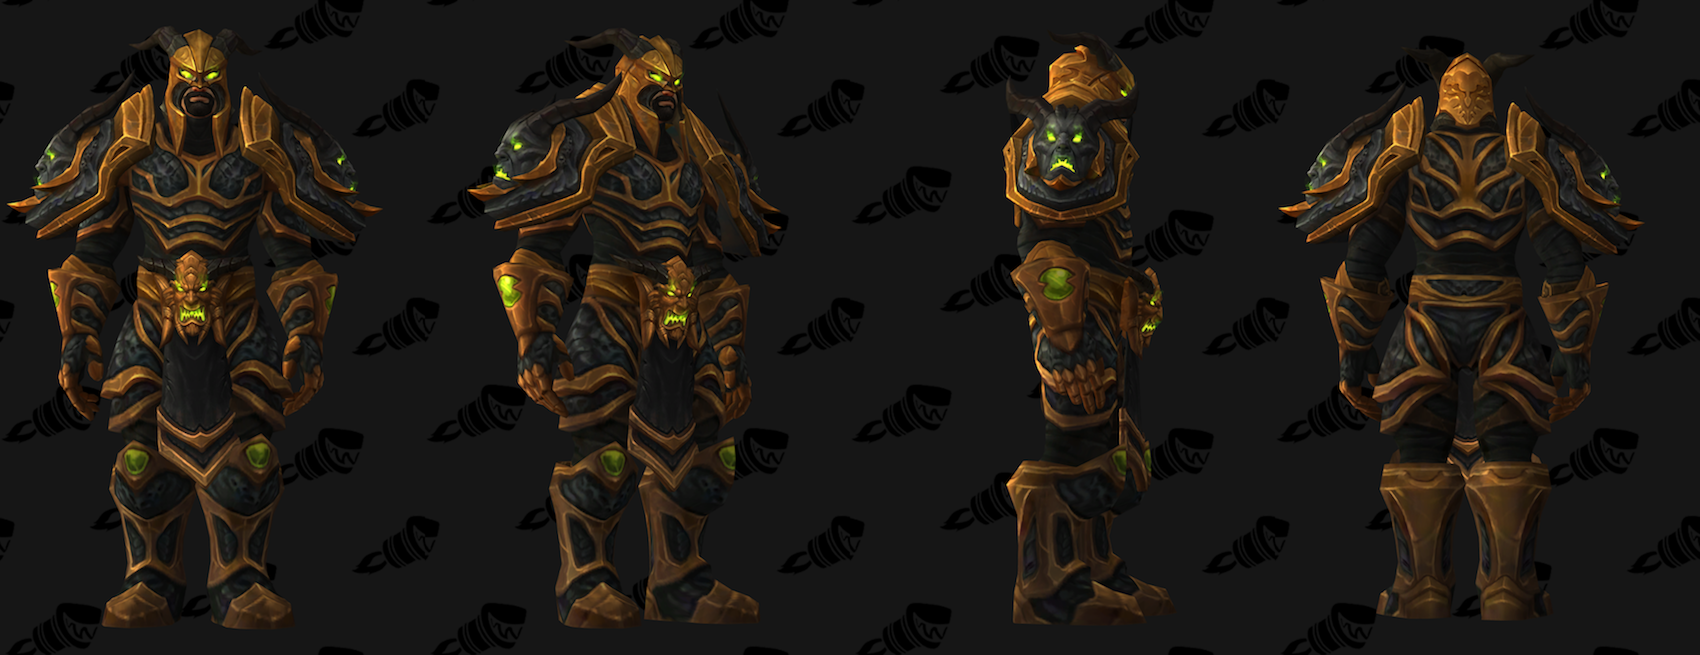 Patch legion wow sets